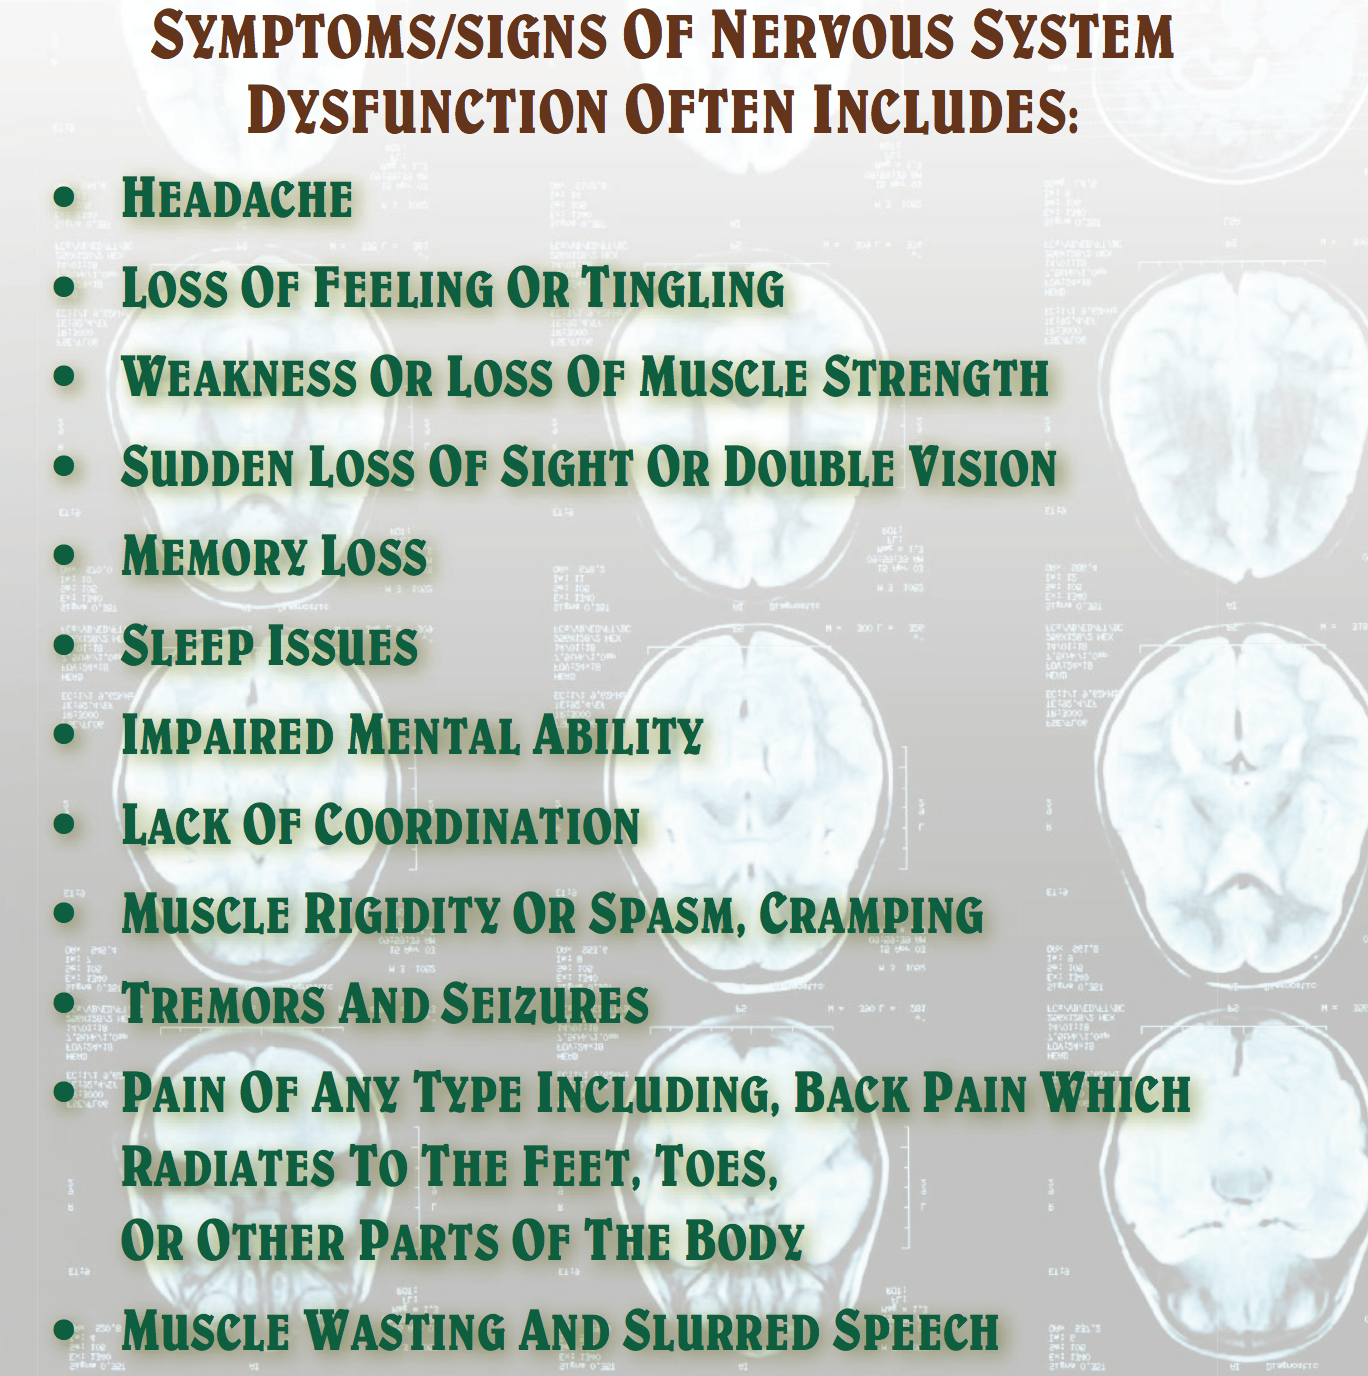 From memory loss to neuropathy and pain, nutrition and natural medicine provides the healing ingredients providing the potential for the nervous system to heal.